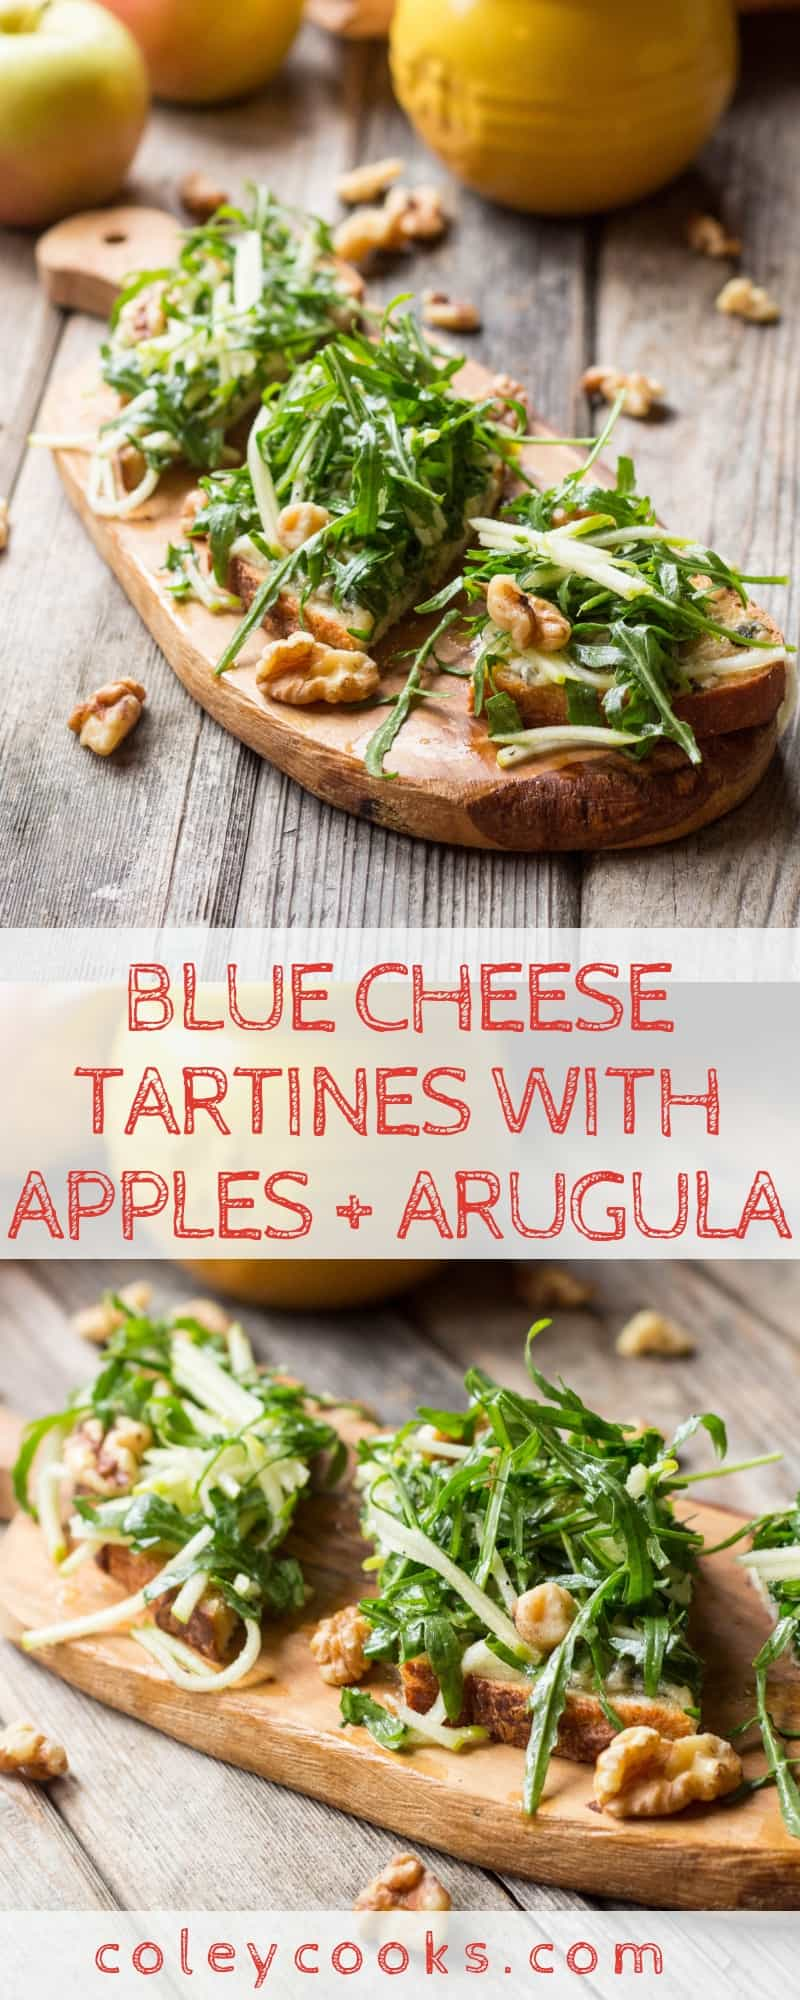 BLUE CHEESE TARTINES with APPLES + ARUGULA | Simple and delicious open face sandwich recipe! Tangy blue cheese, crisp apples, peppery arugula, crunchy walnuts. #easy #tartine #bluecheese #apple #cheese #recipe #brunch #lunch #sandwich #arugula | ColeyCooks.com